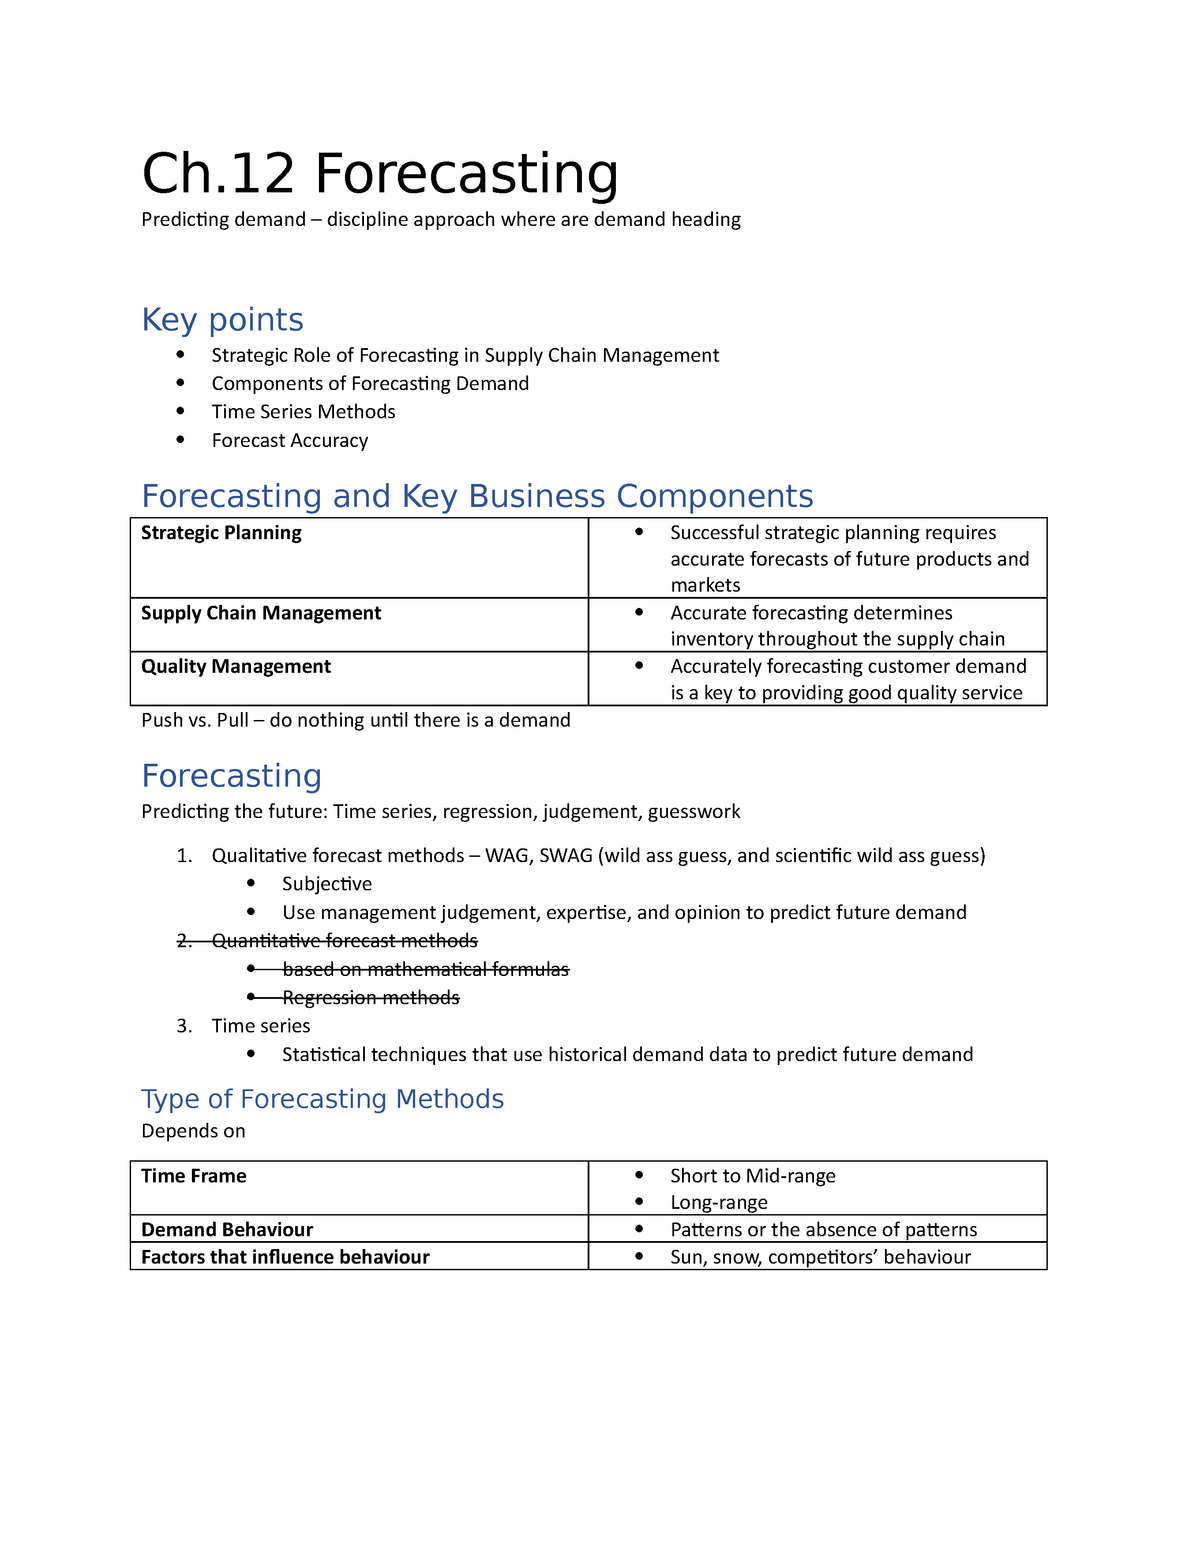 OPMT 1103 - W10 F Notes - Ch  12 Forecasting - OPMT 1103